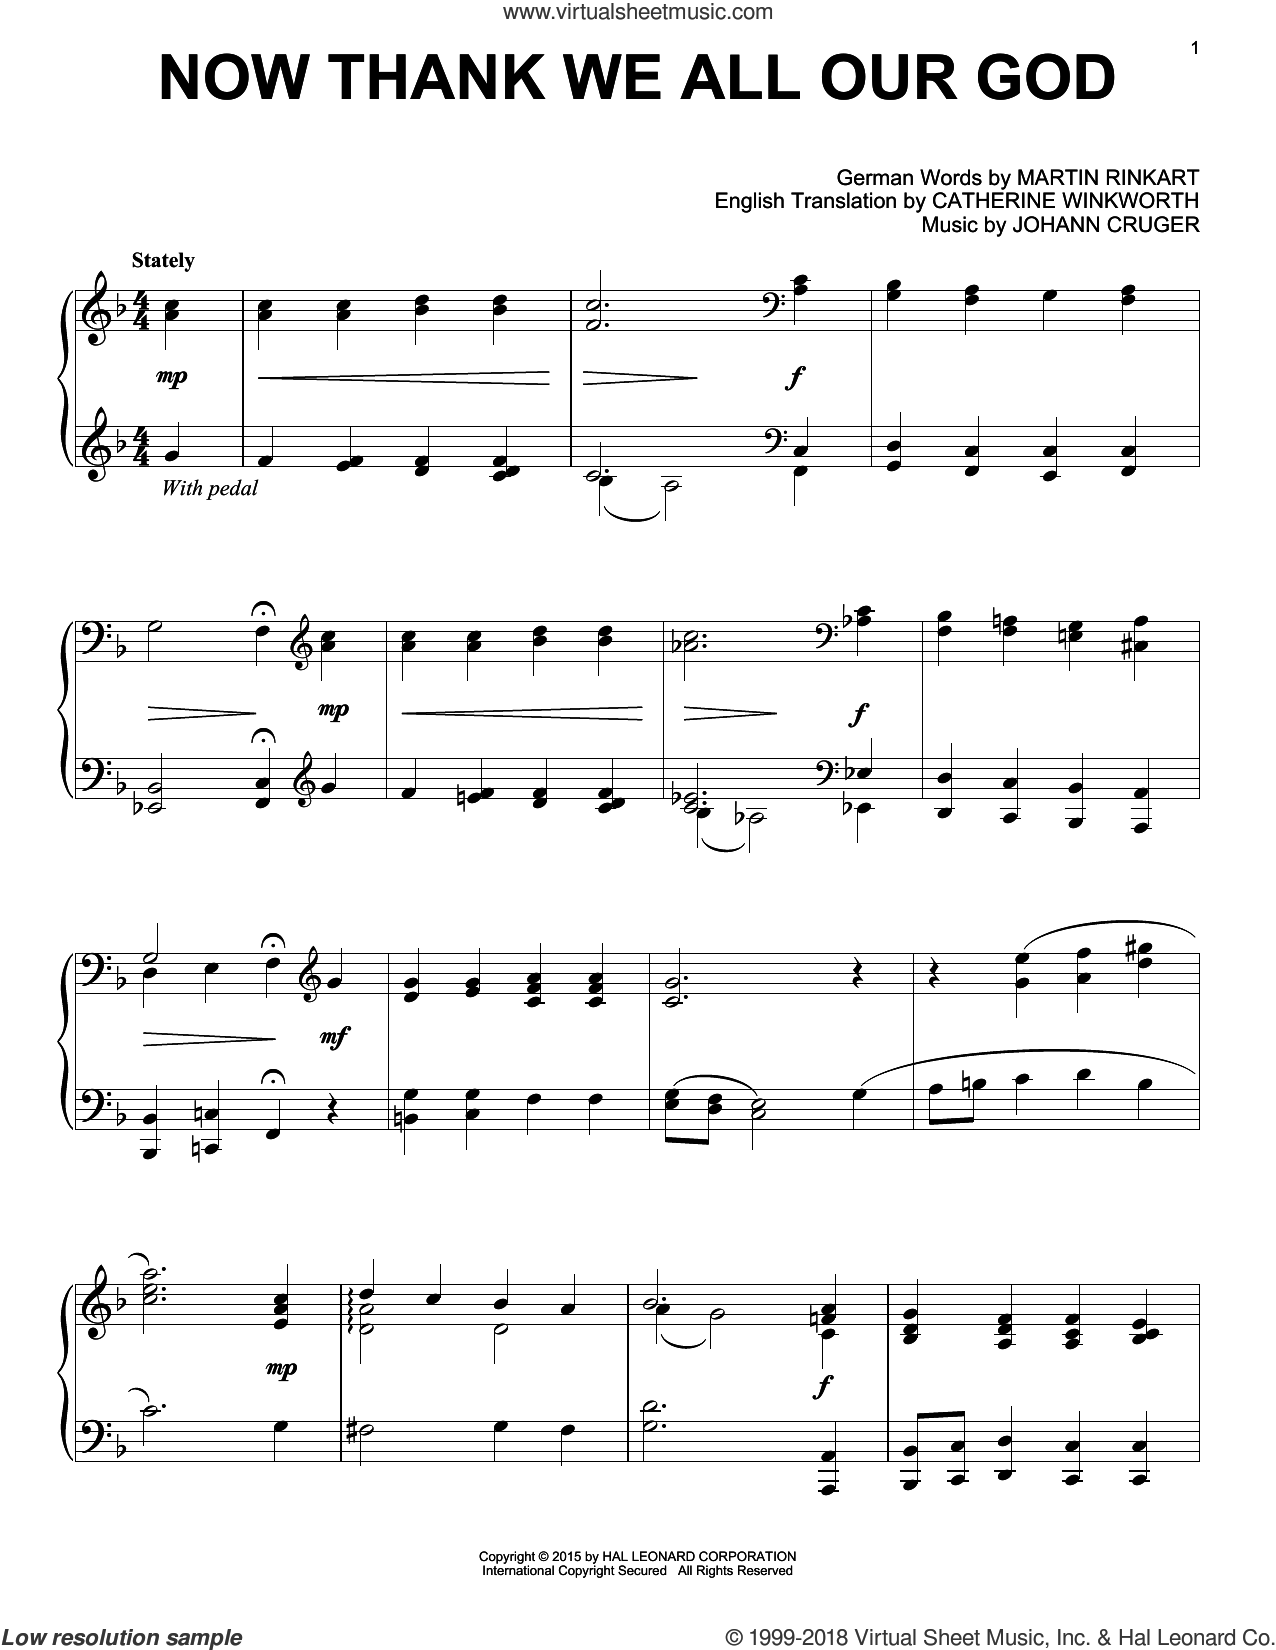 Now Thank We All Our God sheet music for piano solo by Martin Rinkart, Catherine Winkworth and Johann Cruger and Johann Cruger, intermediate